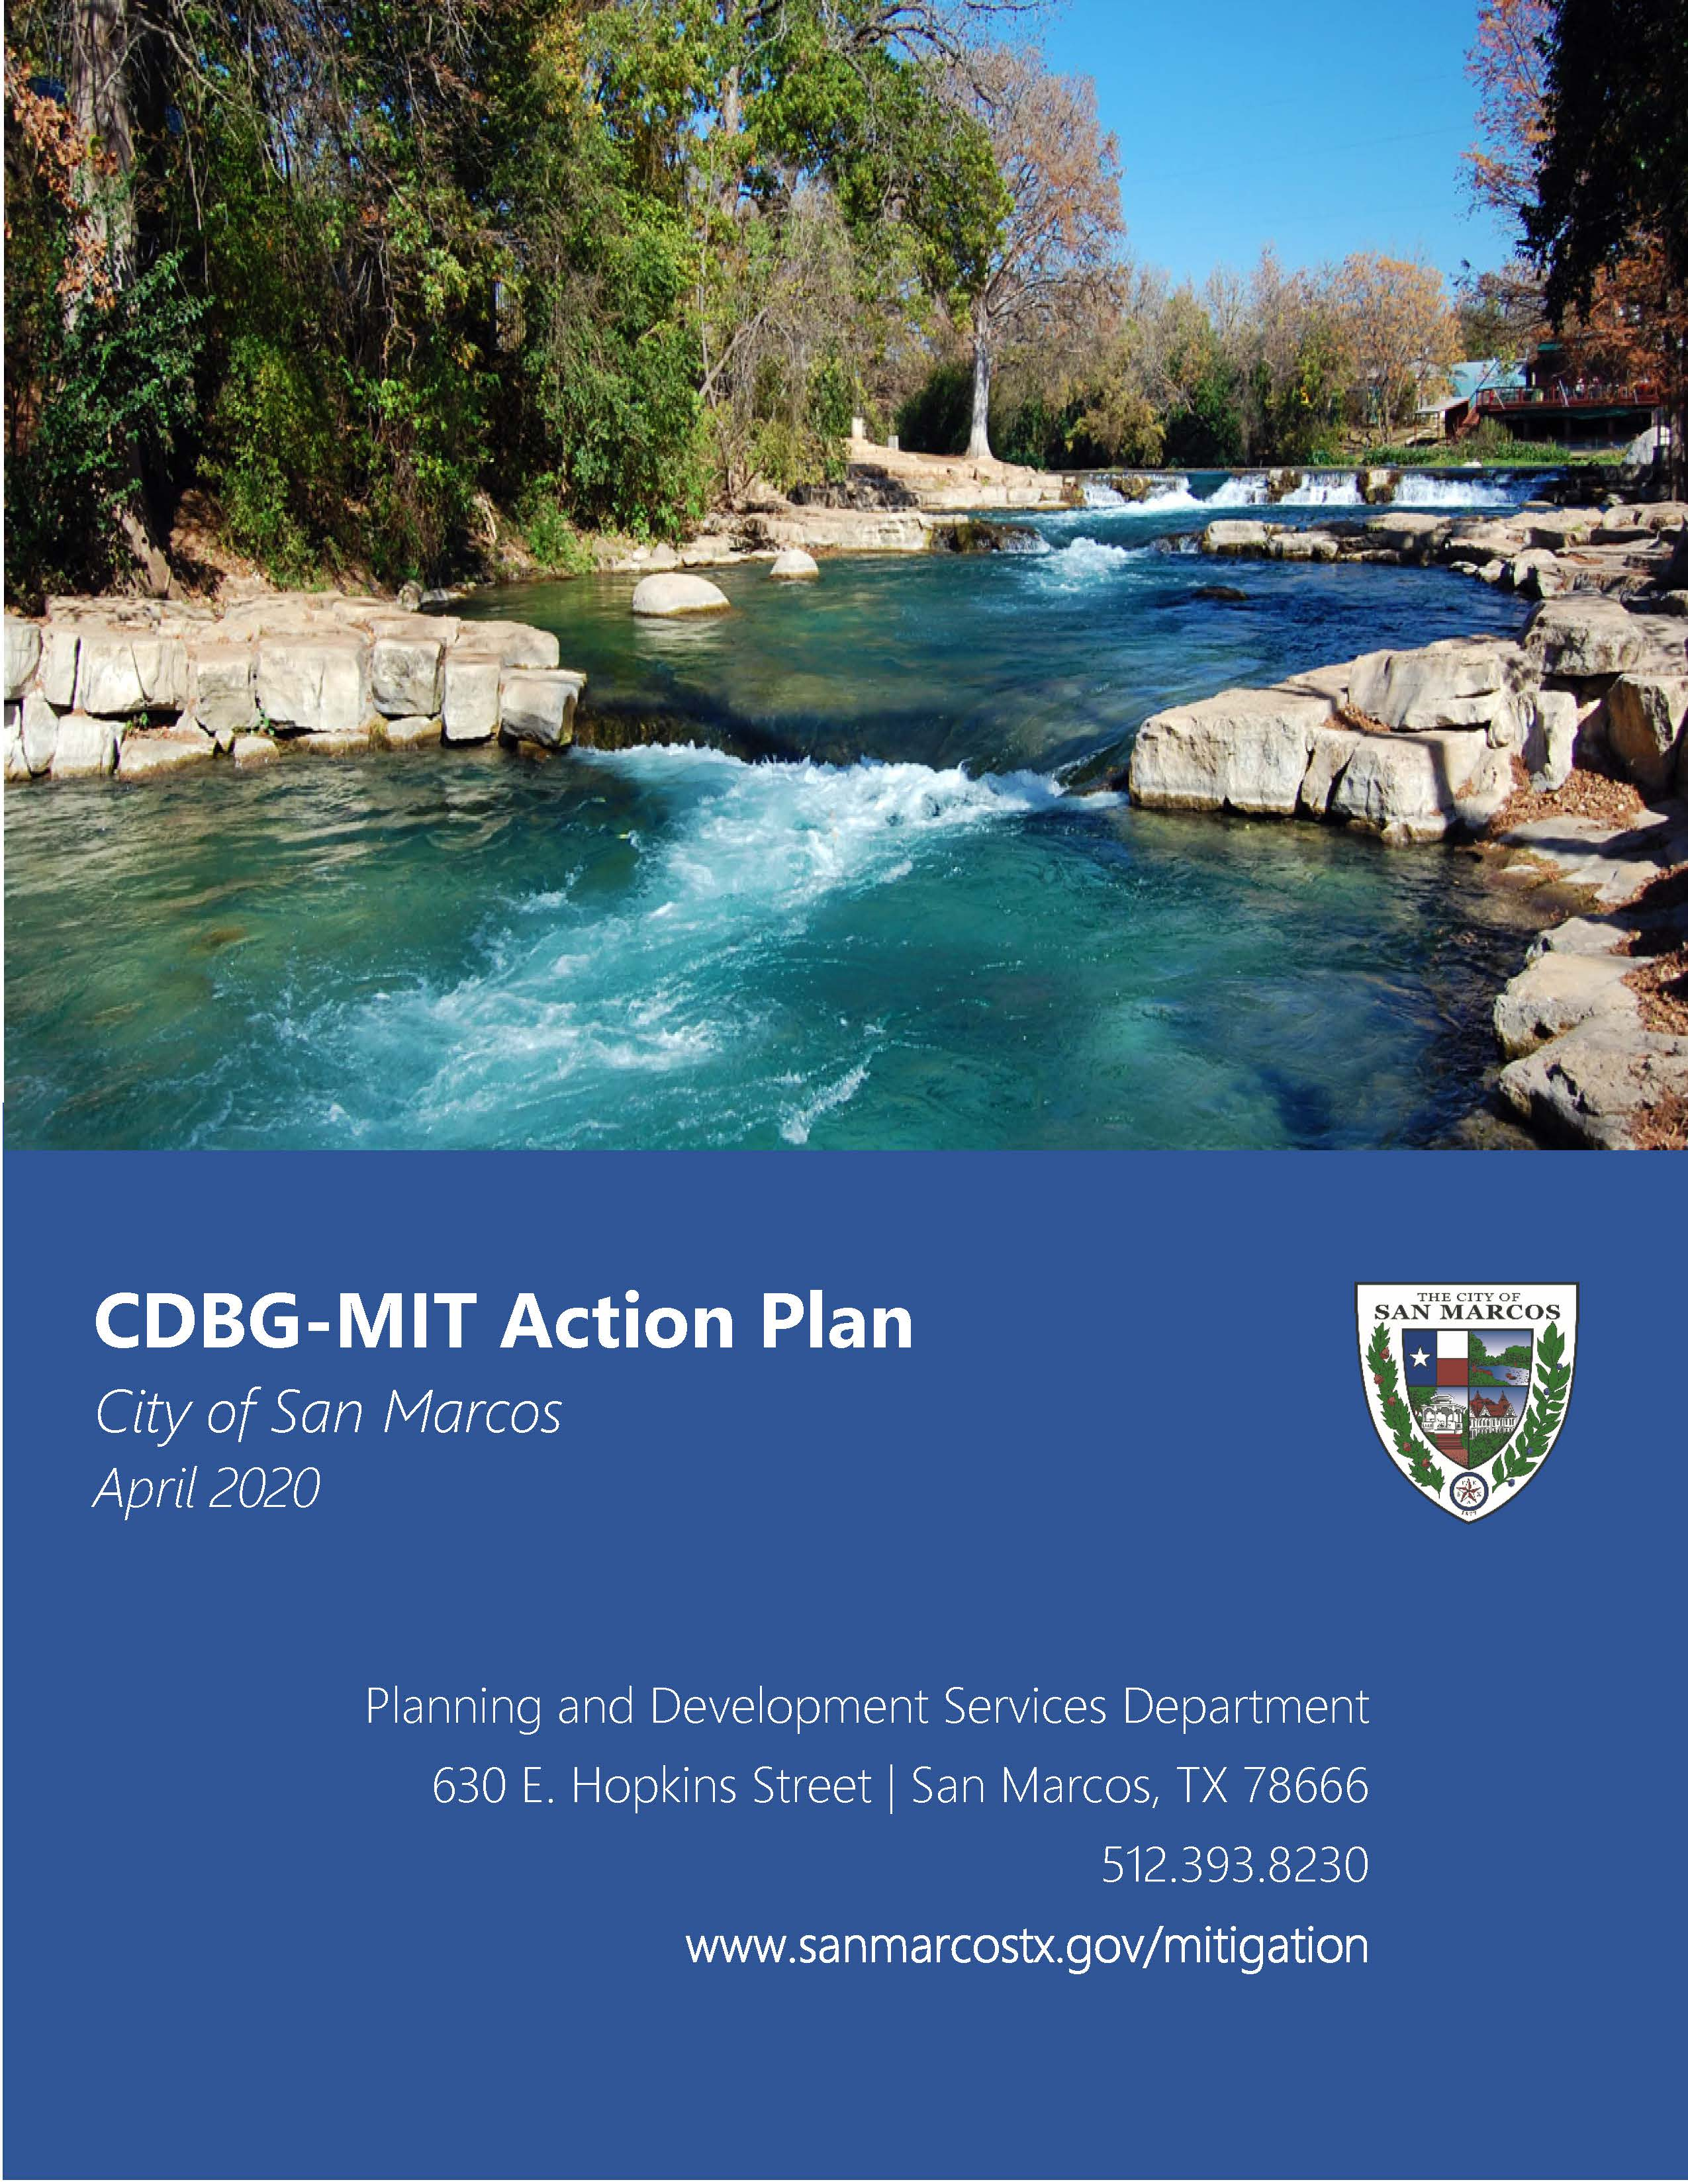 CDBG-MIT Action Plan